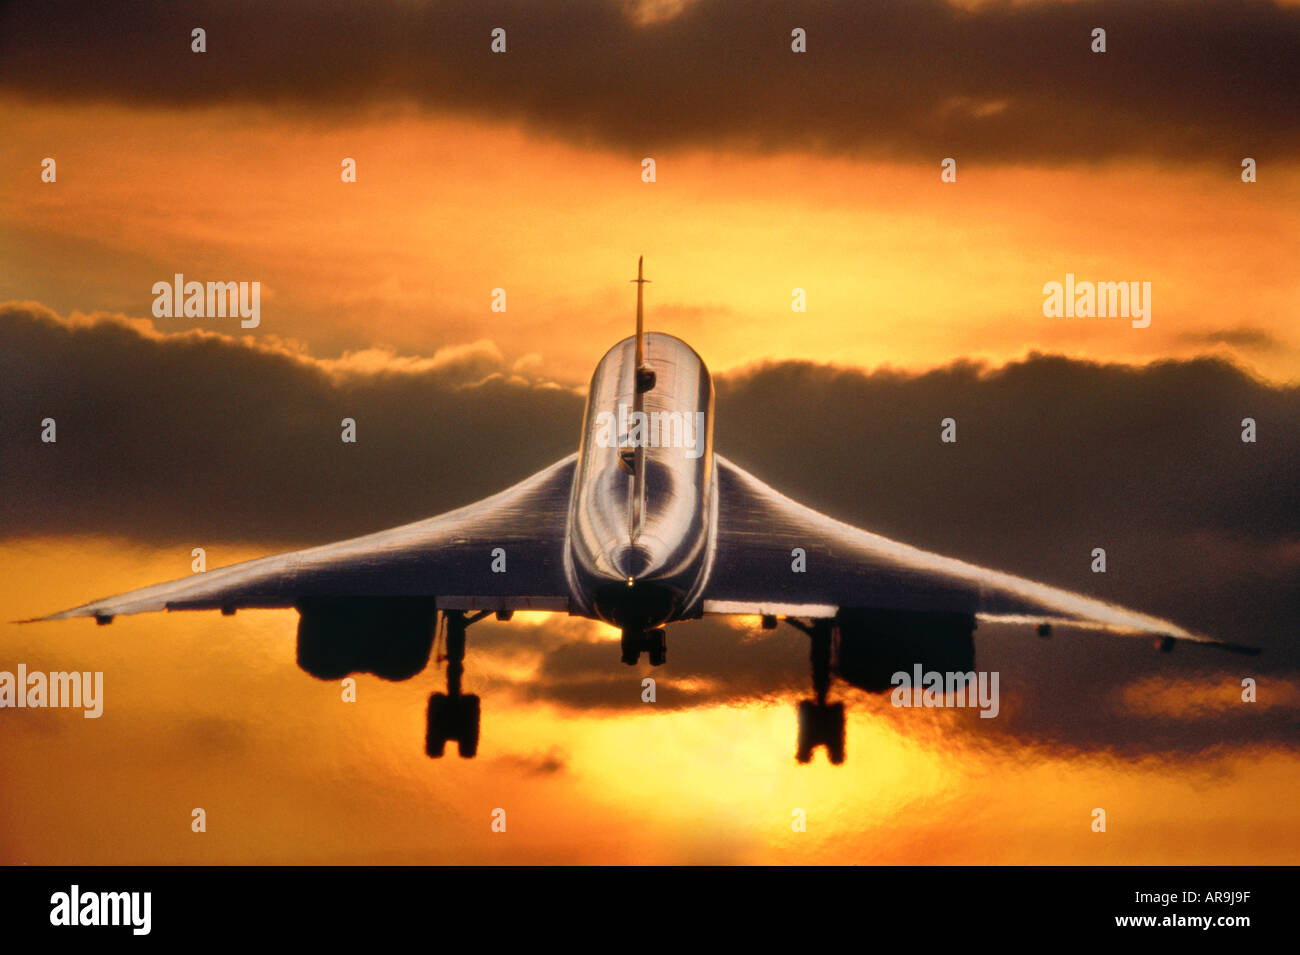 BAC BAE Aerospatiale Concorde supersonic jet thrust British Airways from London Heathrow airport to New York  flying - Stock Image